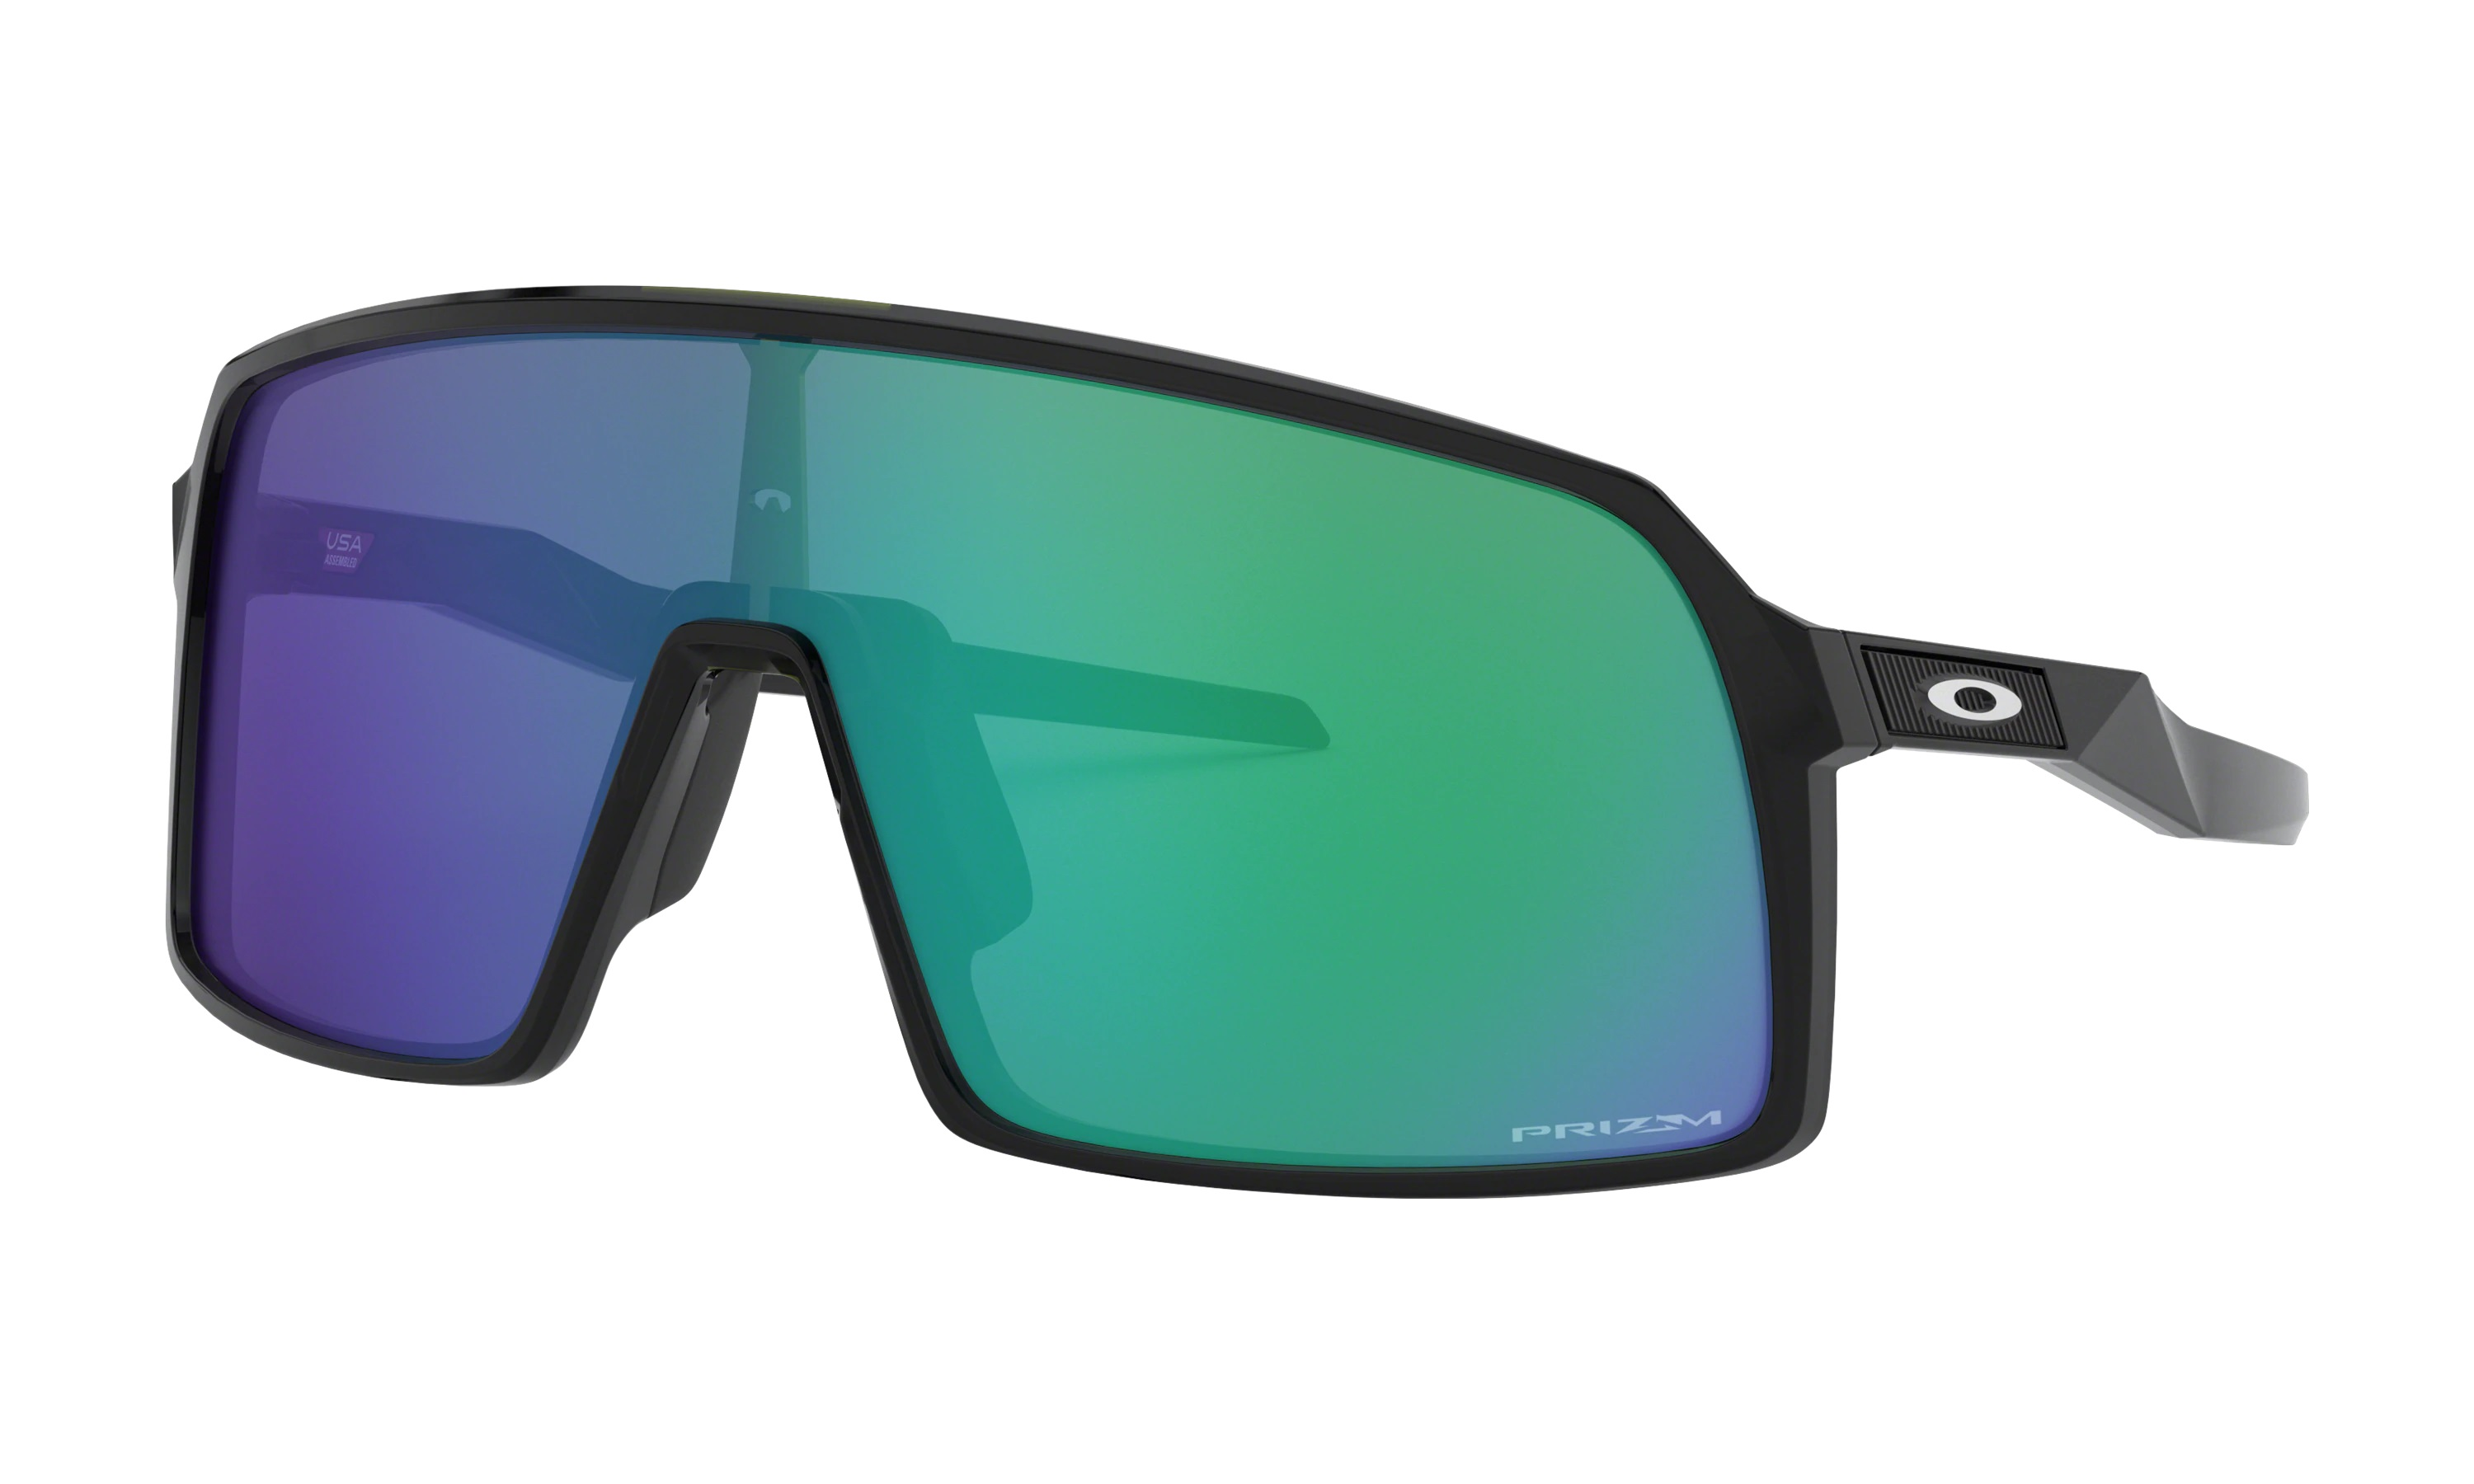 Очки OAKLEY Sutro Black Ink/Prizm Jade Iridium, Линзы: S3